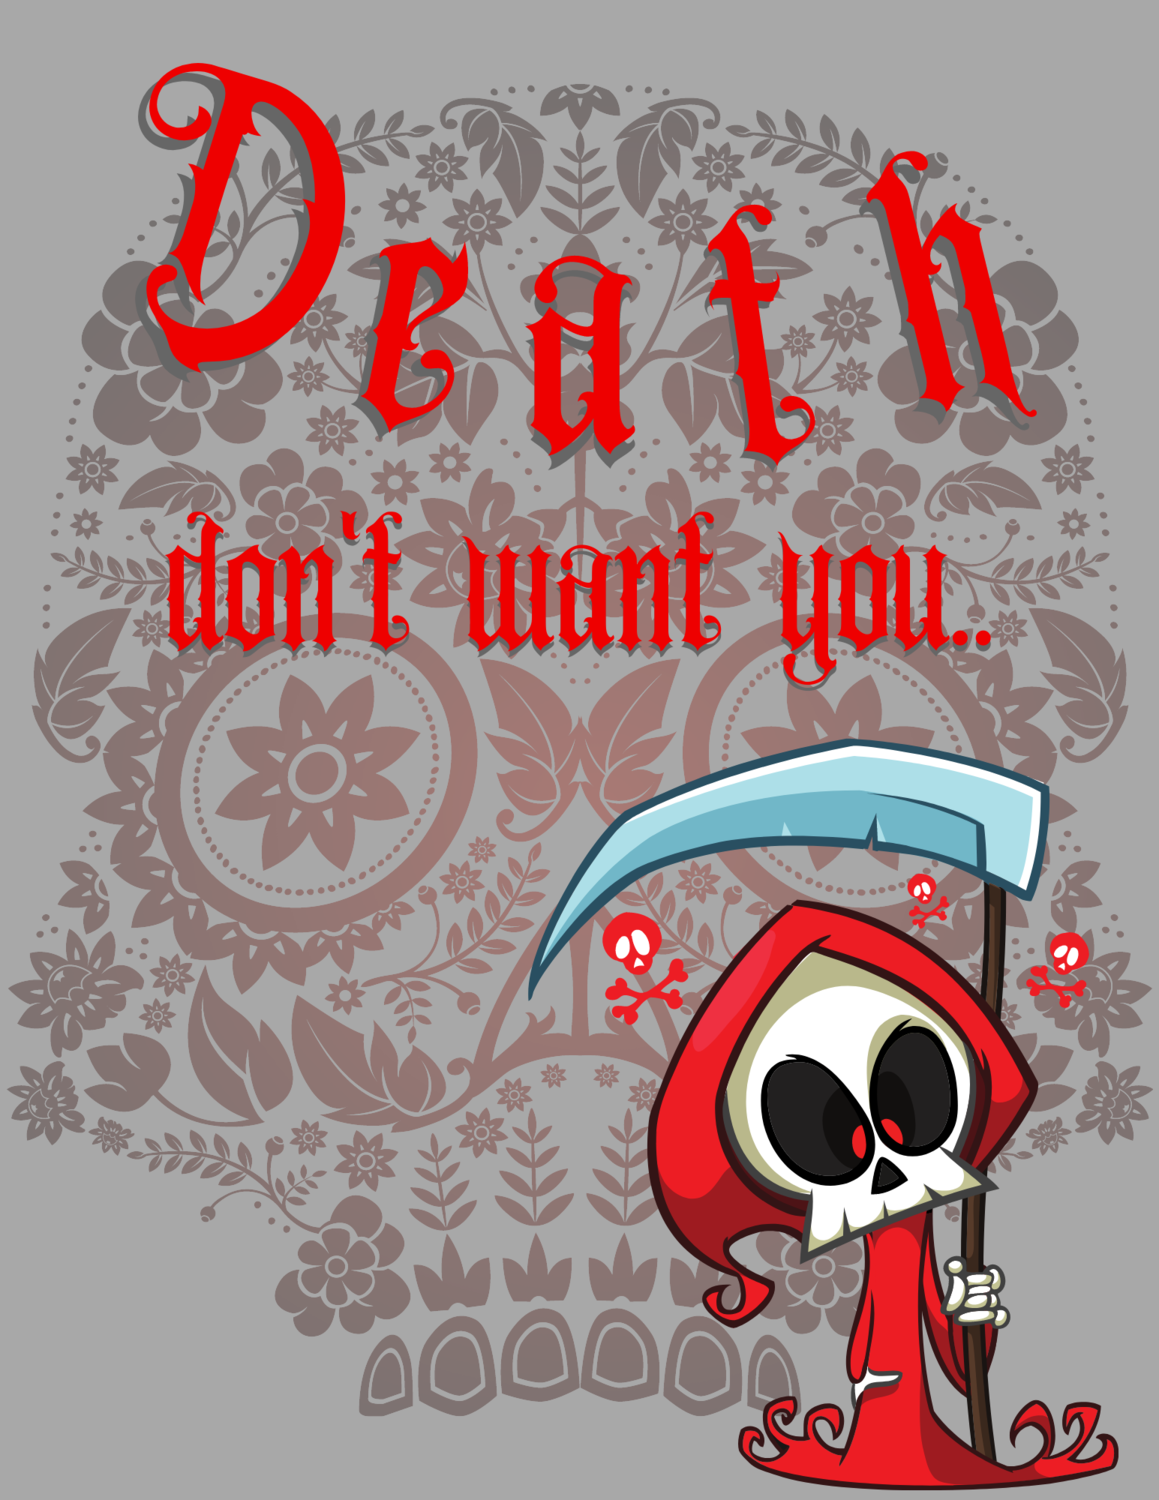 """Death don't want you,"" 3/4 sleeve baseball shirt.."